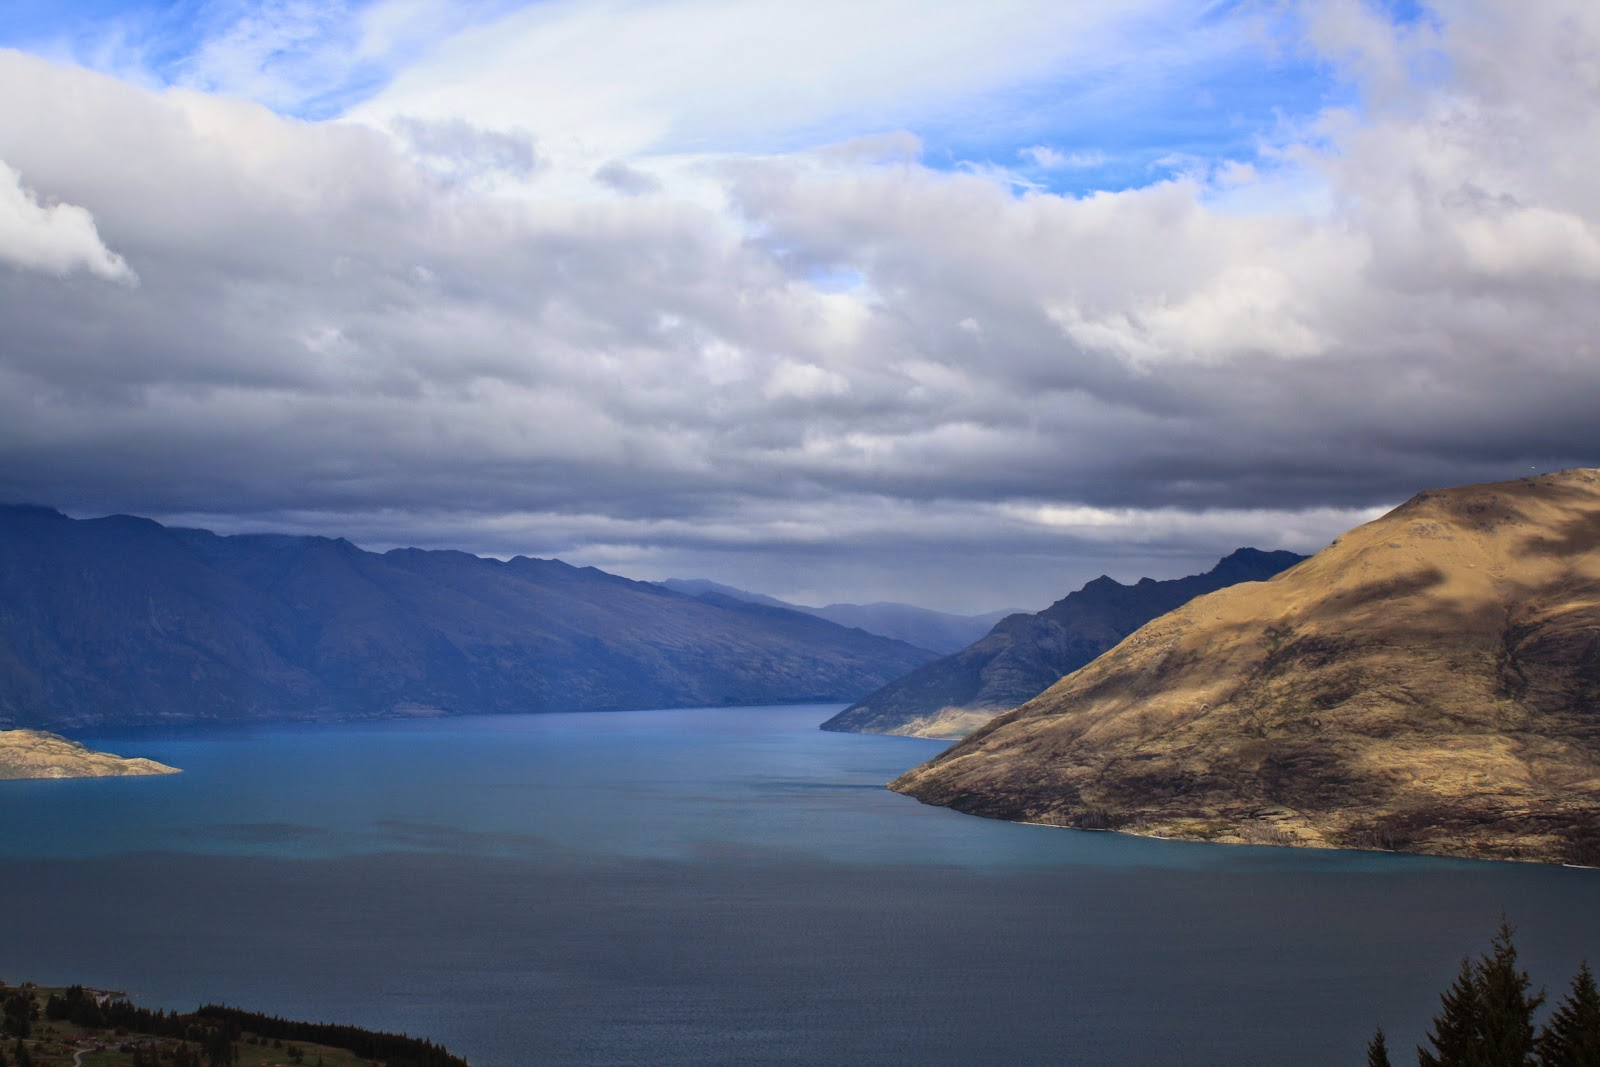 Lake Wakatipu, Queenstown from the top of the gondolas.